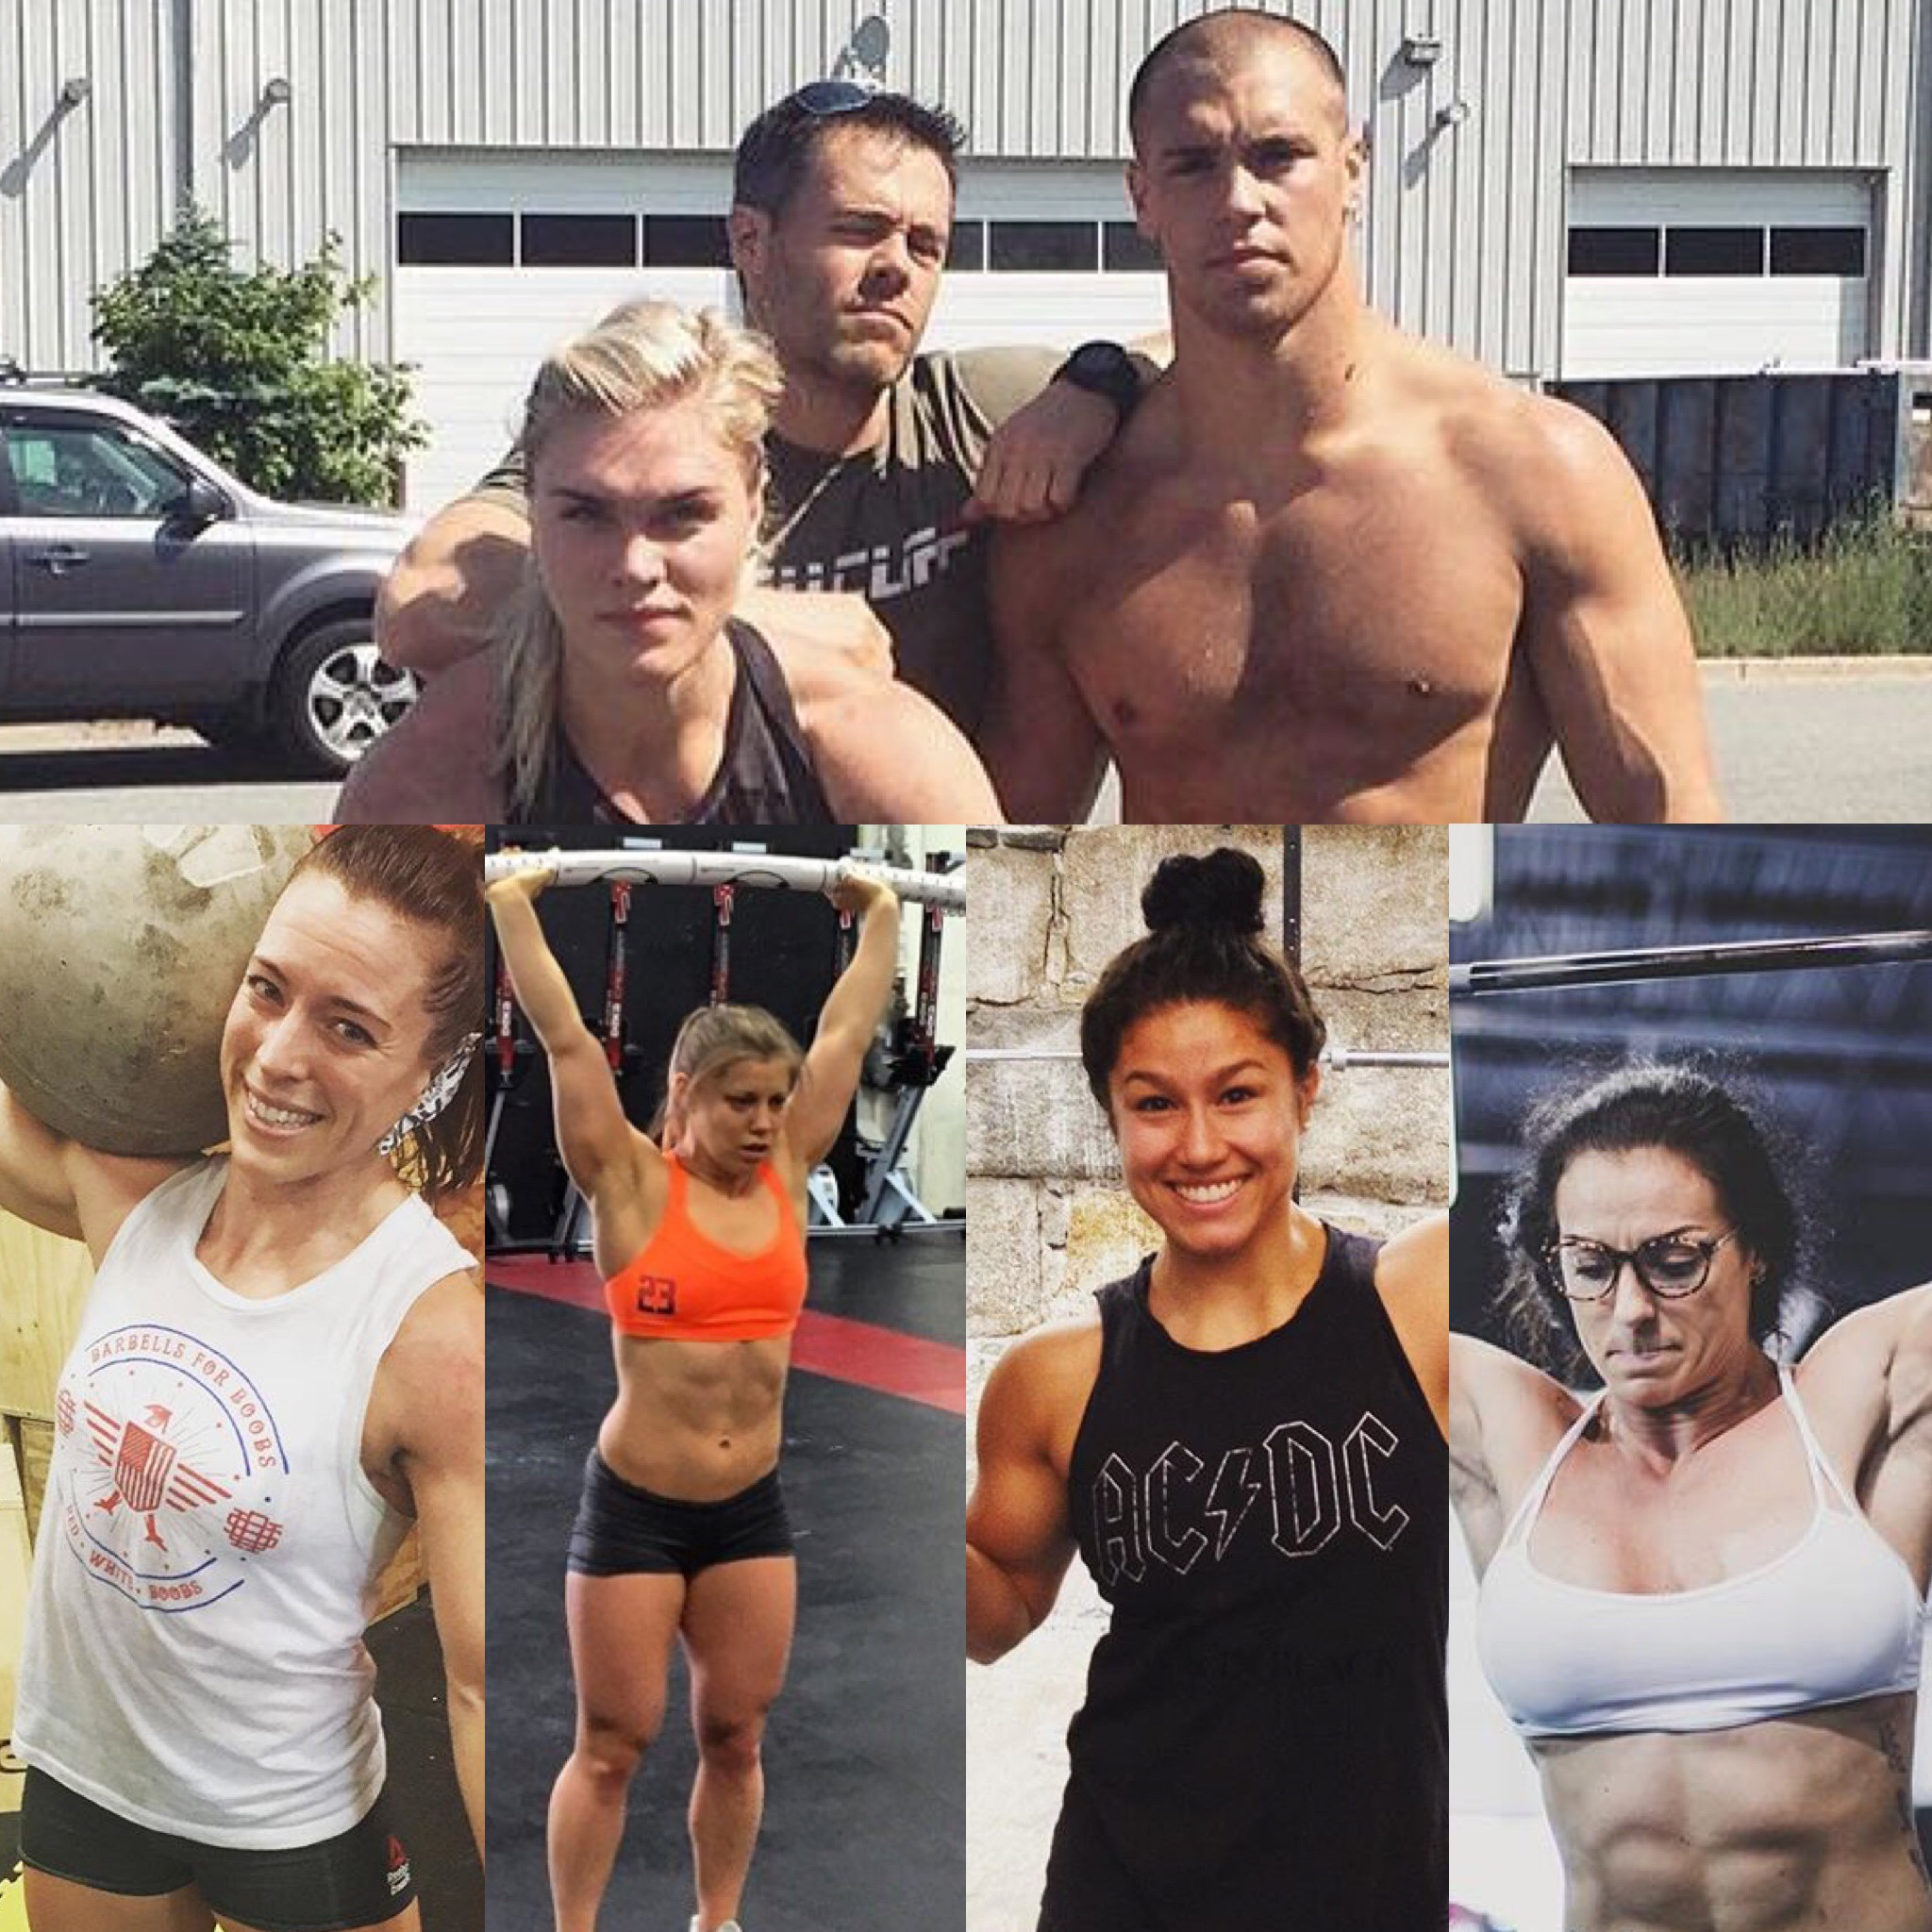 b40cfe4b5 A blog to help you optimize your full-body and life performance